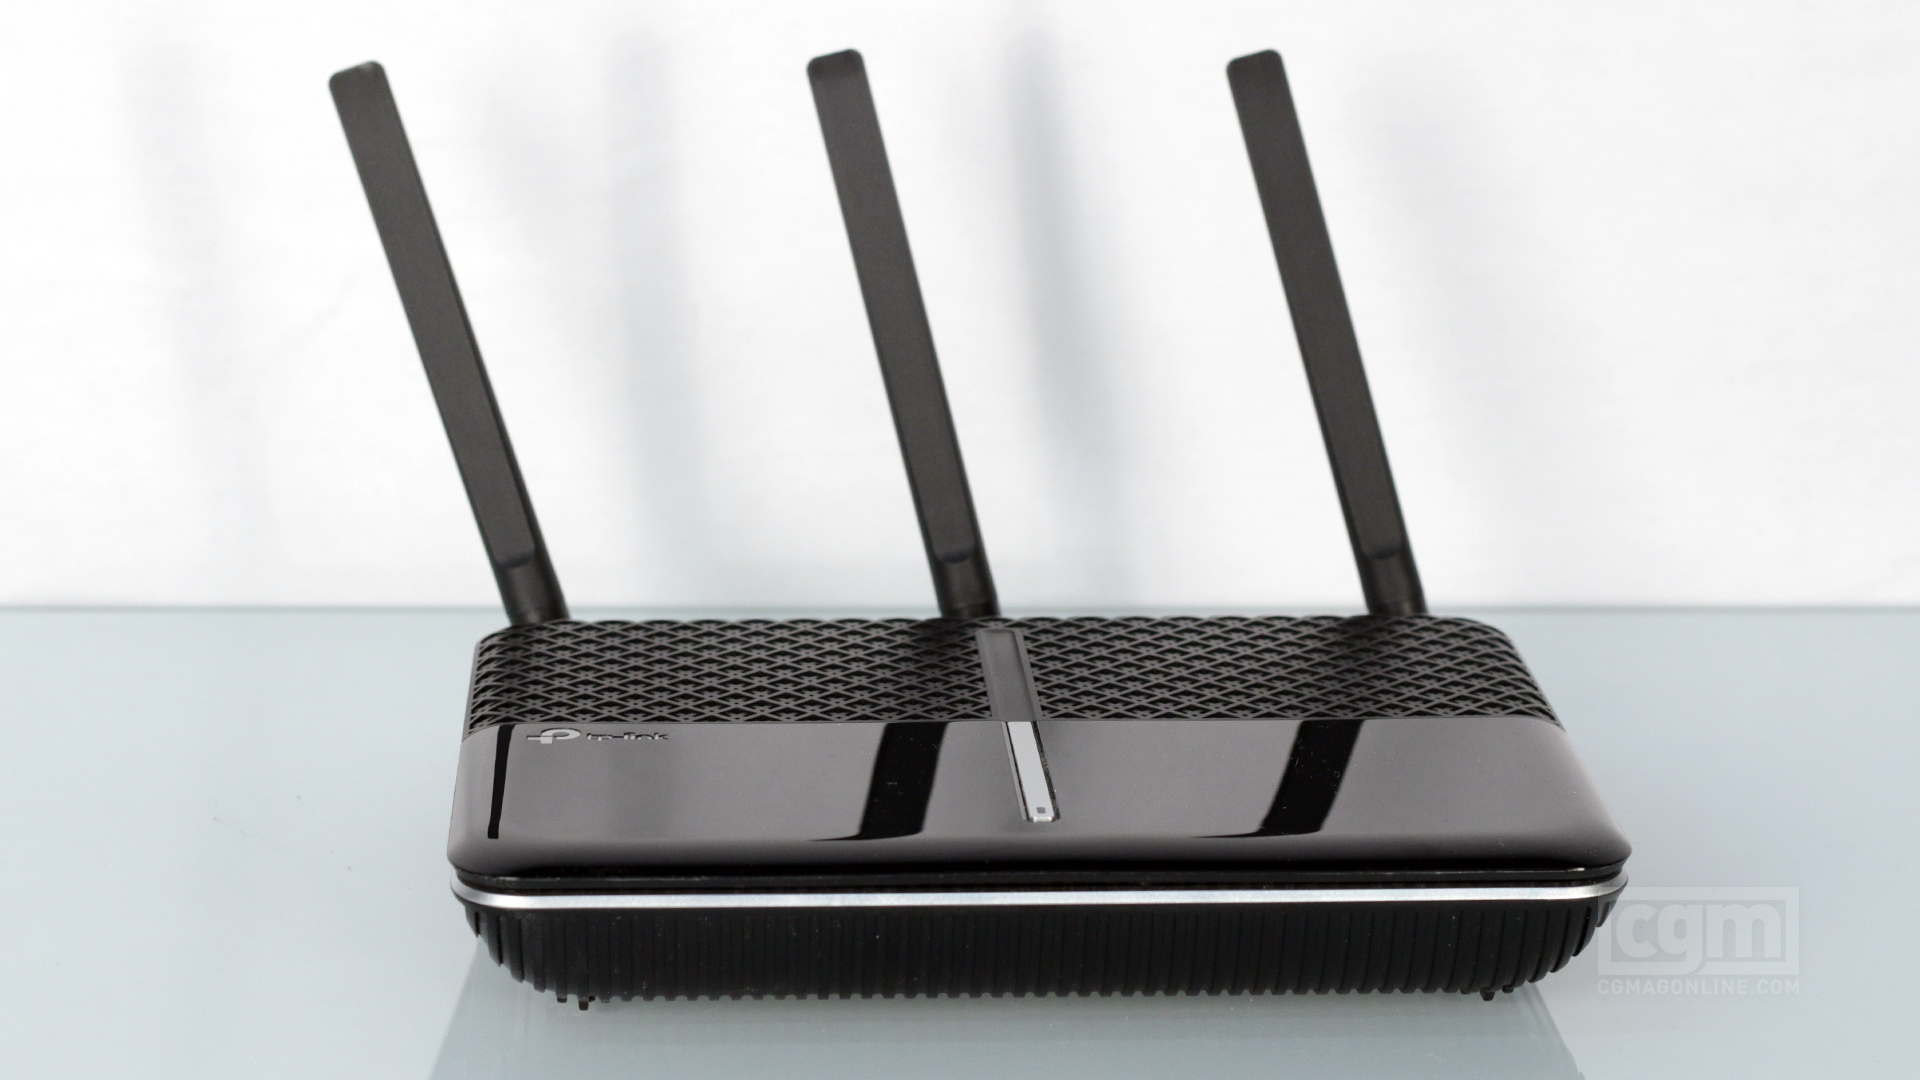 TP-Link Archer AC2300 Mu-Mimo Router Review: Affordable High Quality Wi-Fi